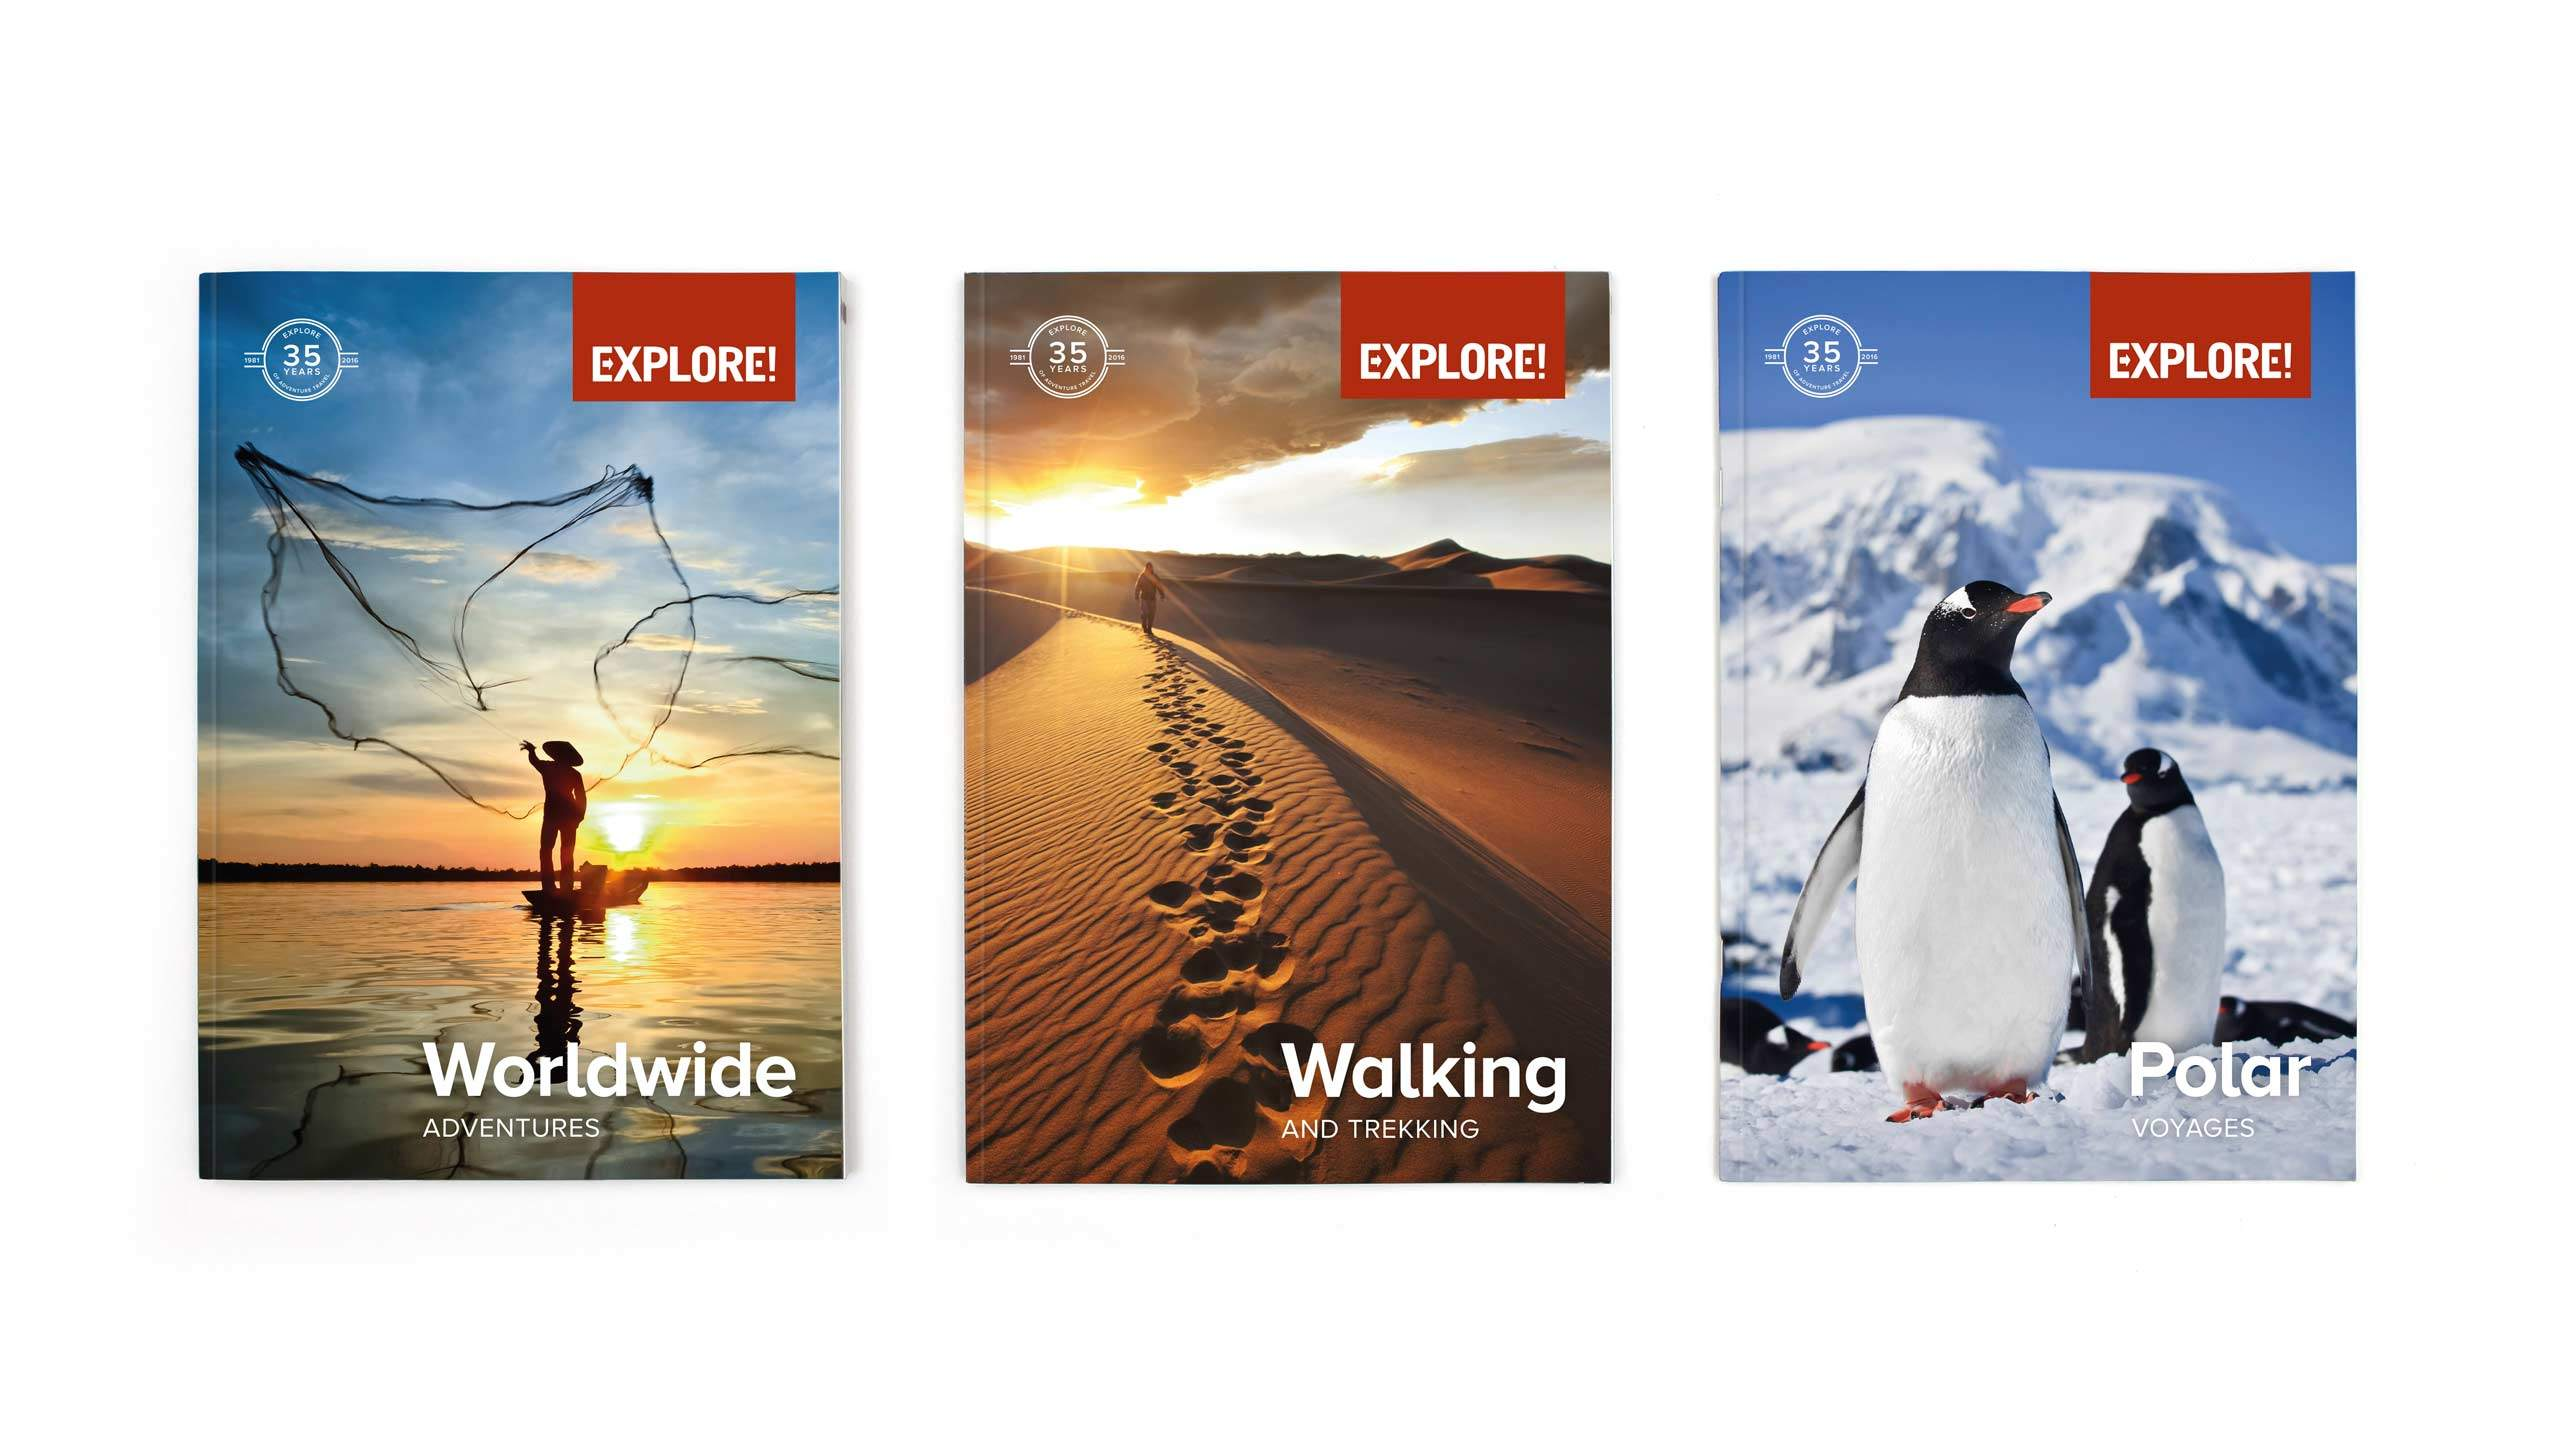 adventure travel brochure design refresh front covers explore worldwide